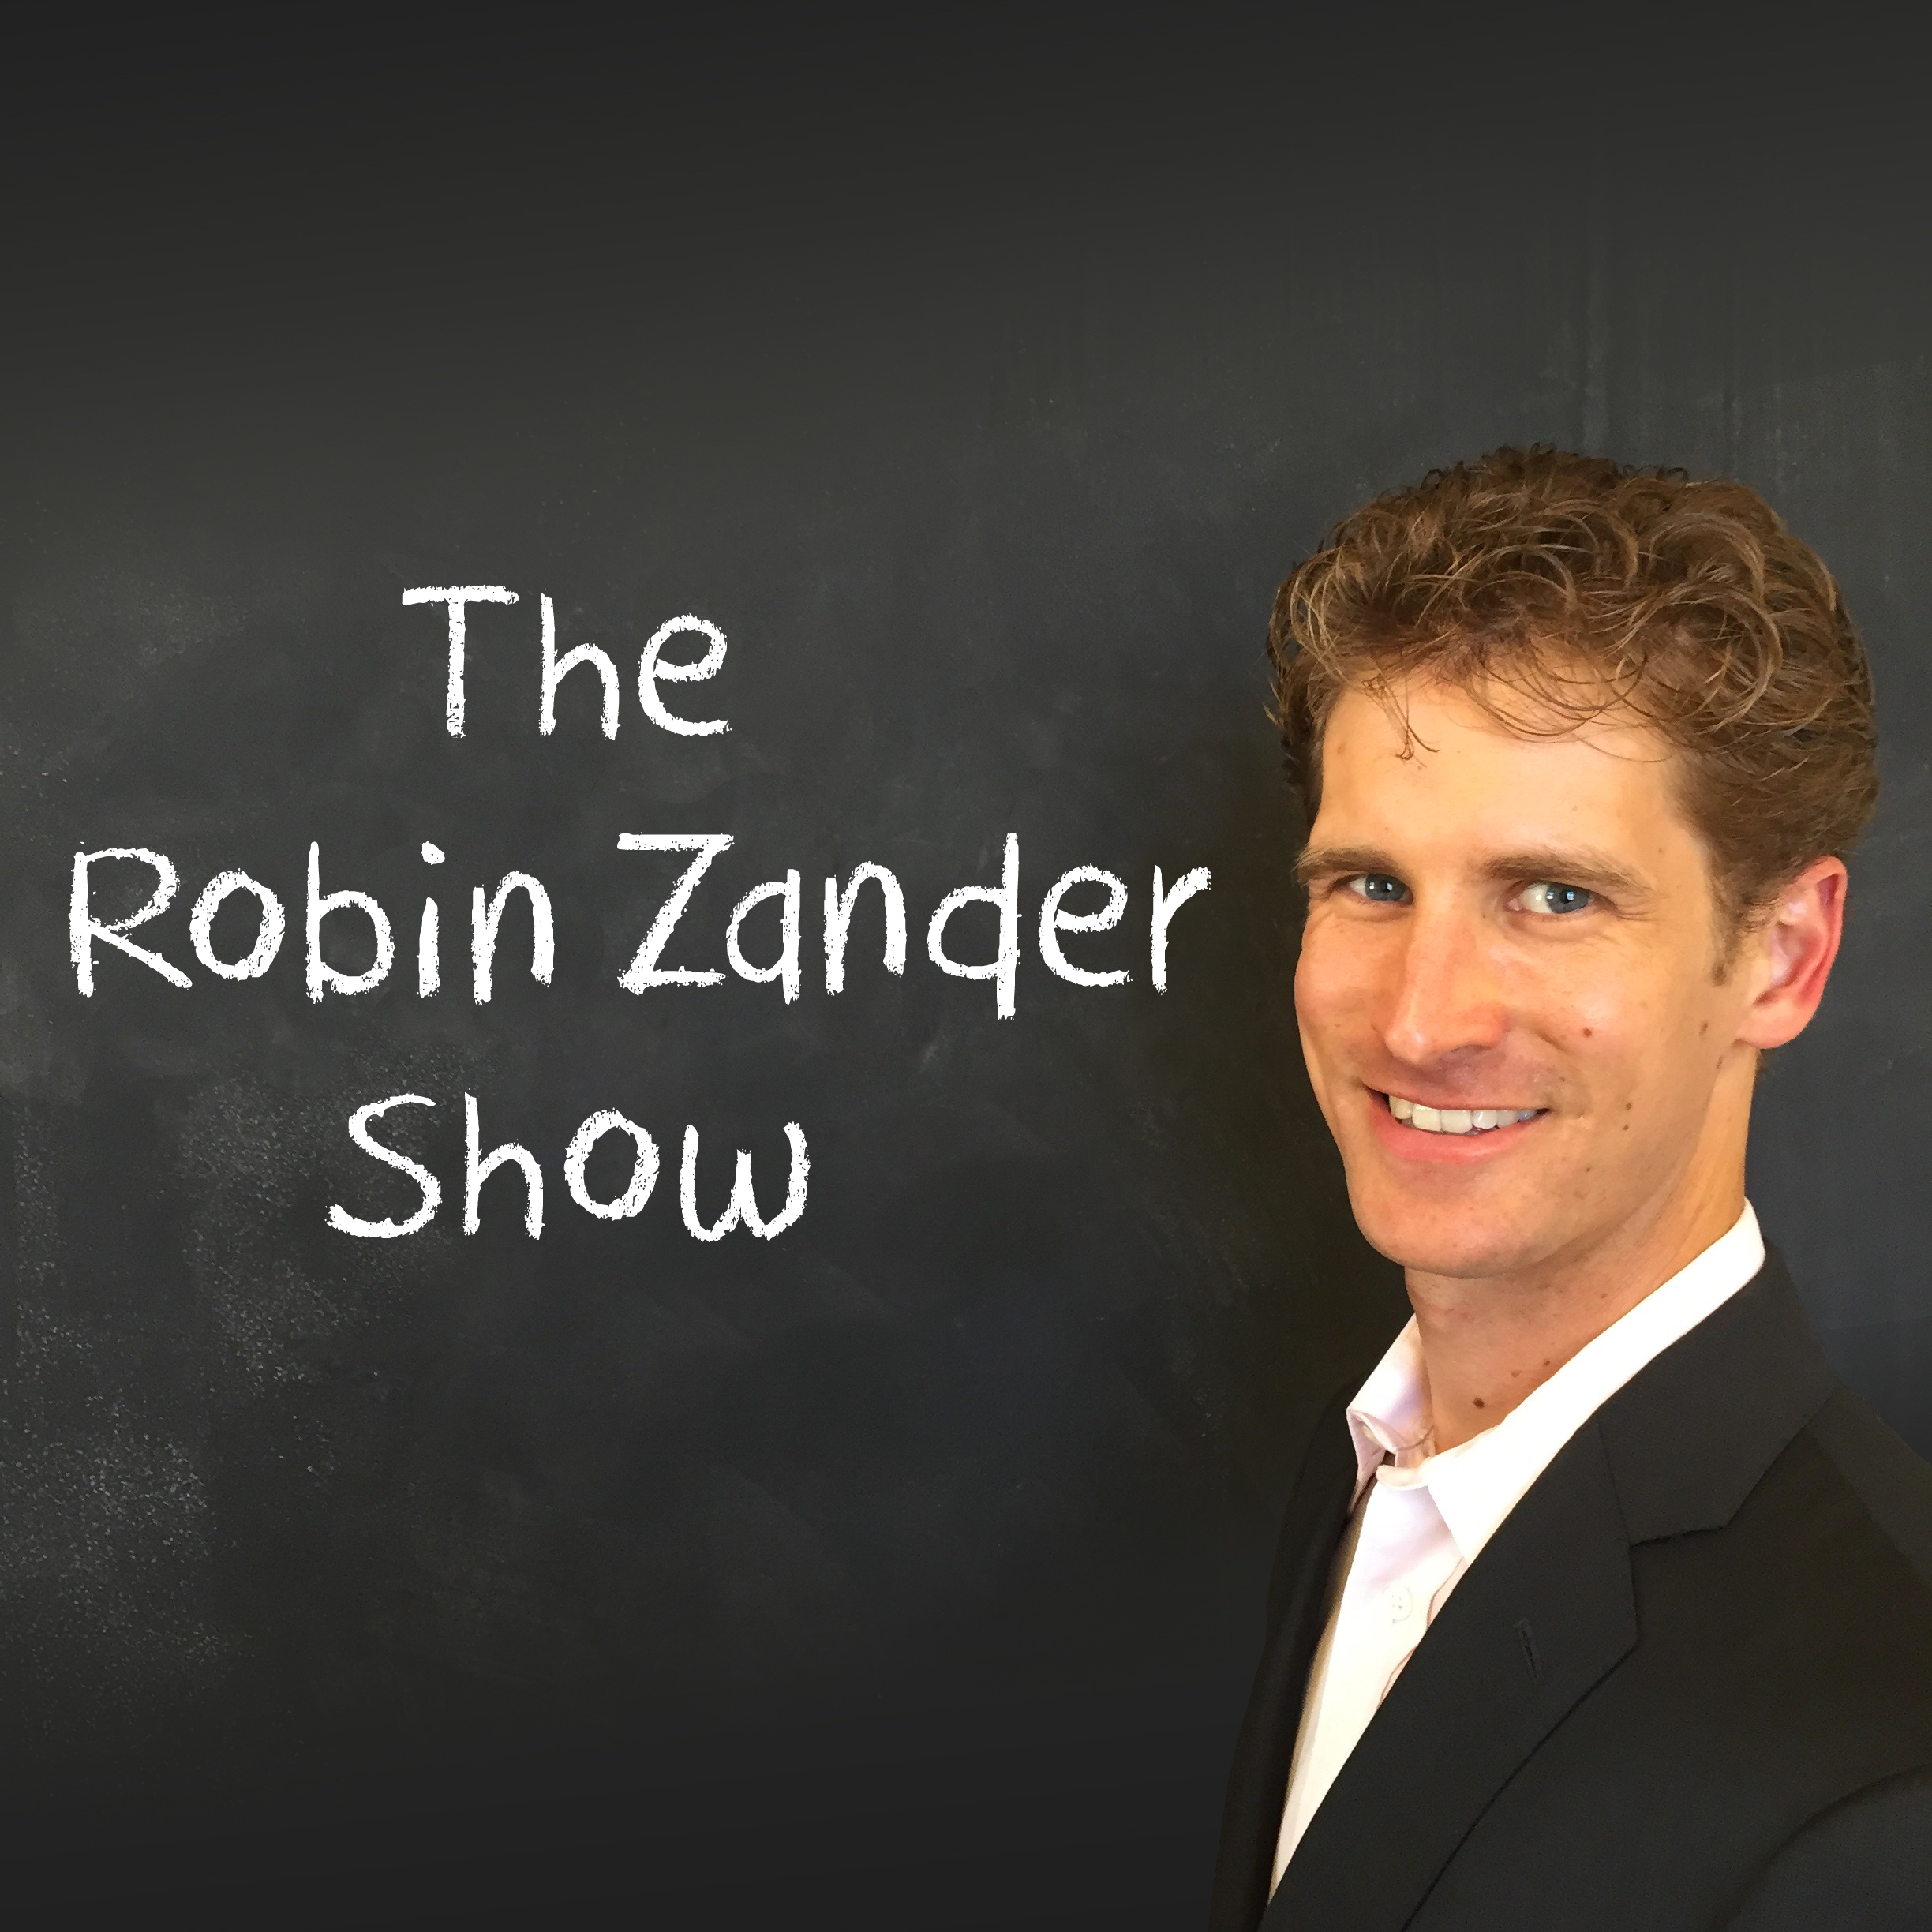 The Robin Zander Show